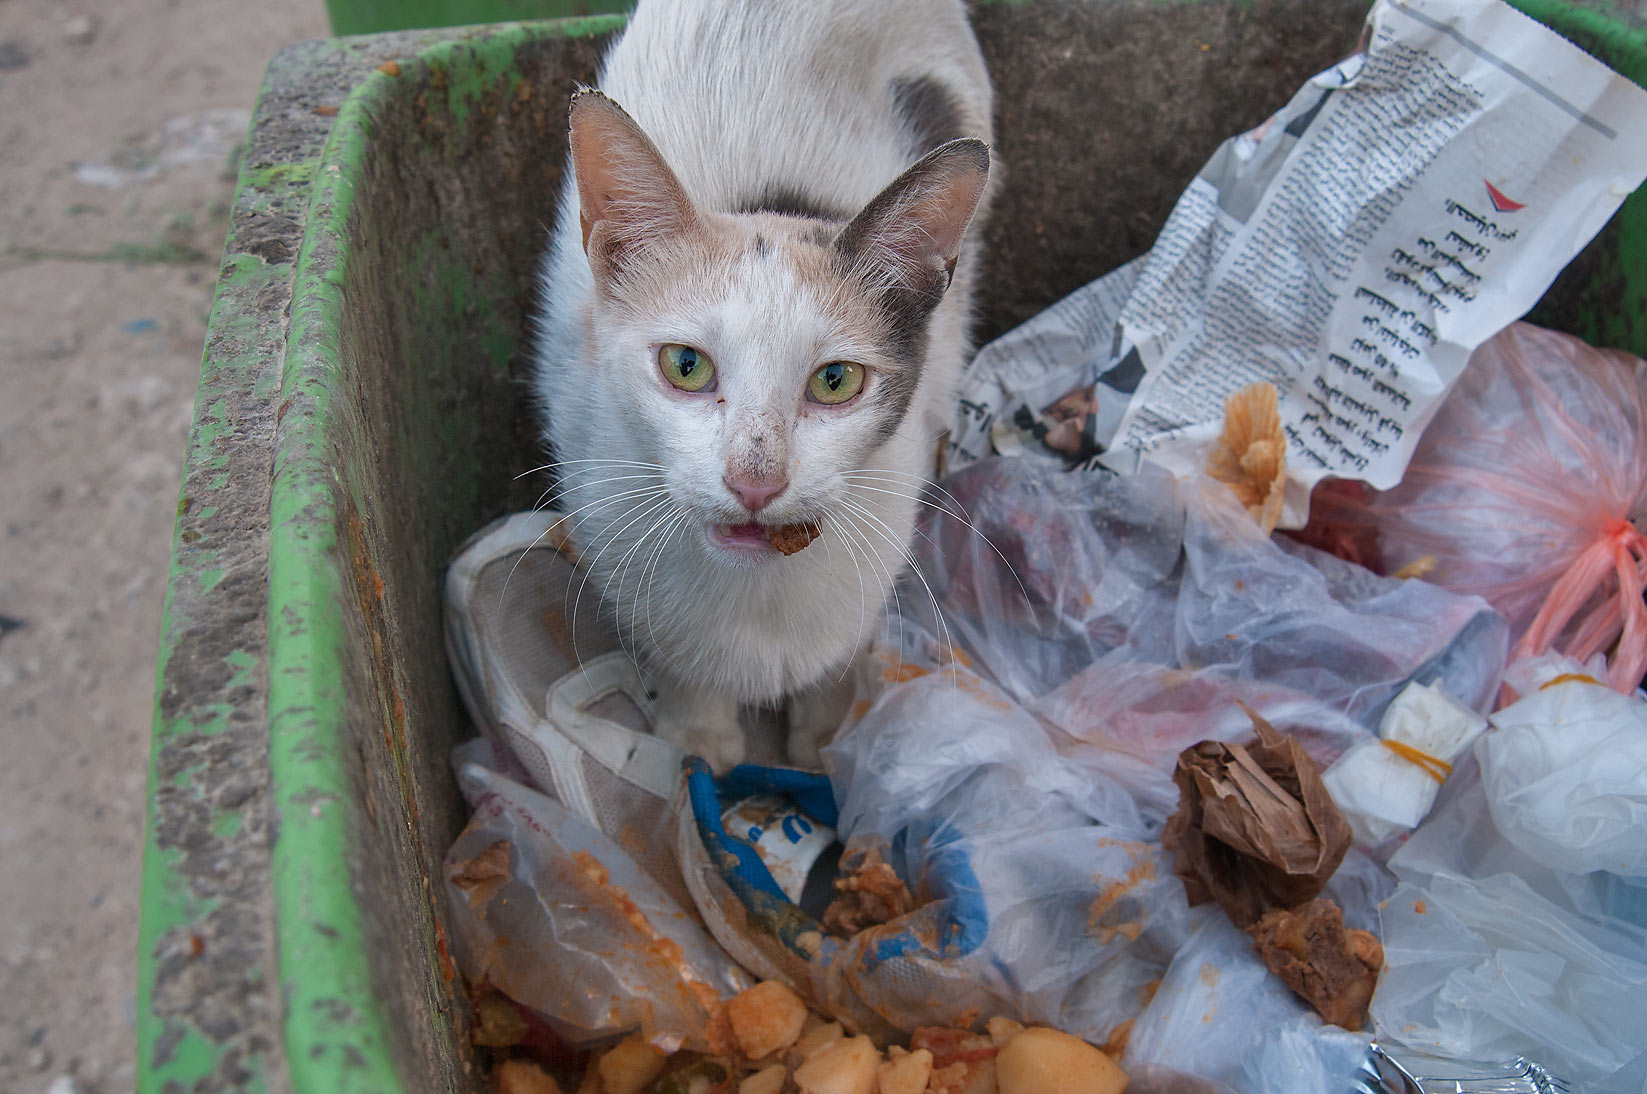 Cat eating cereal for breakfast in a dumpster...Thani St., Musheirib area. Doha, Qatar